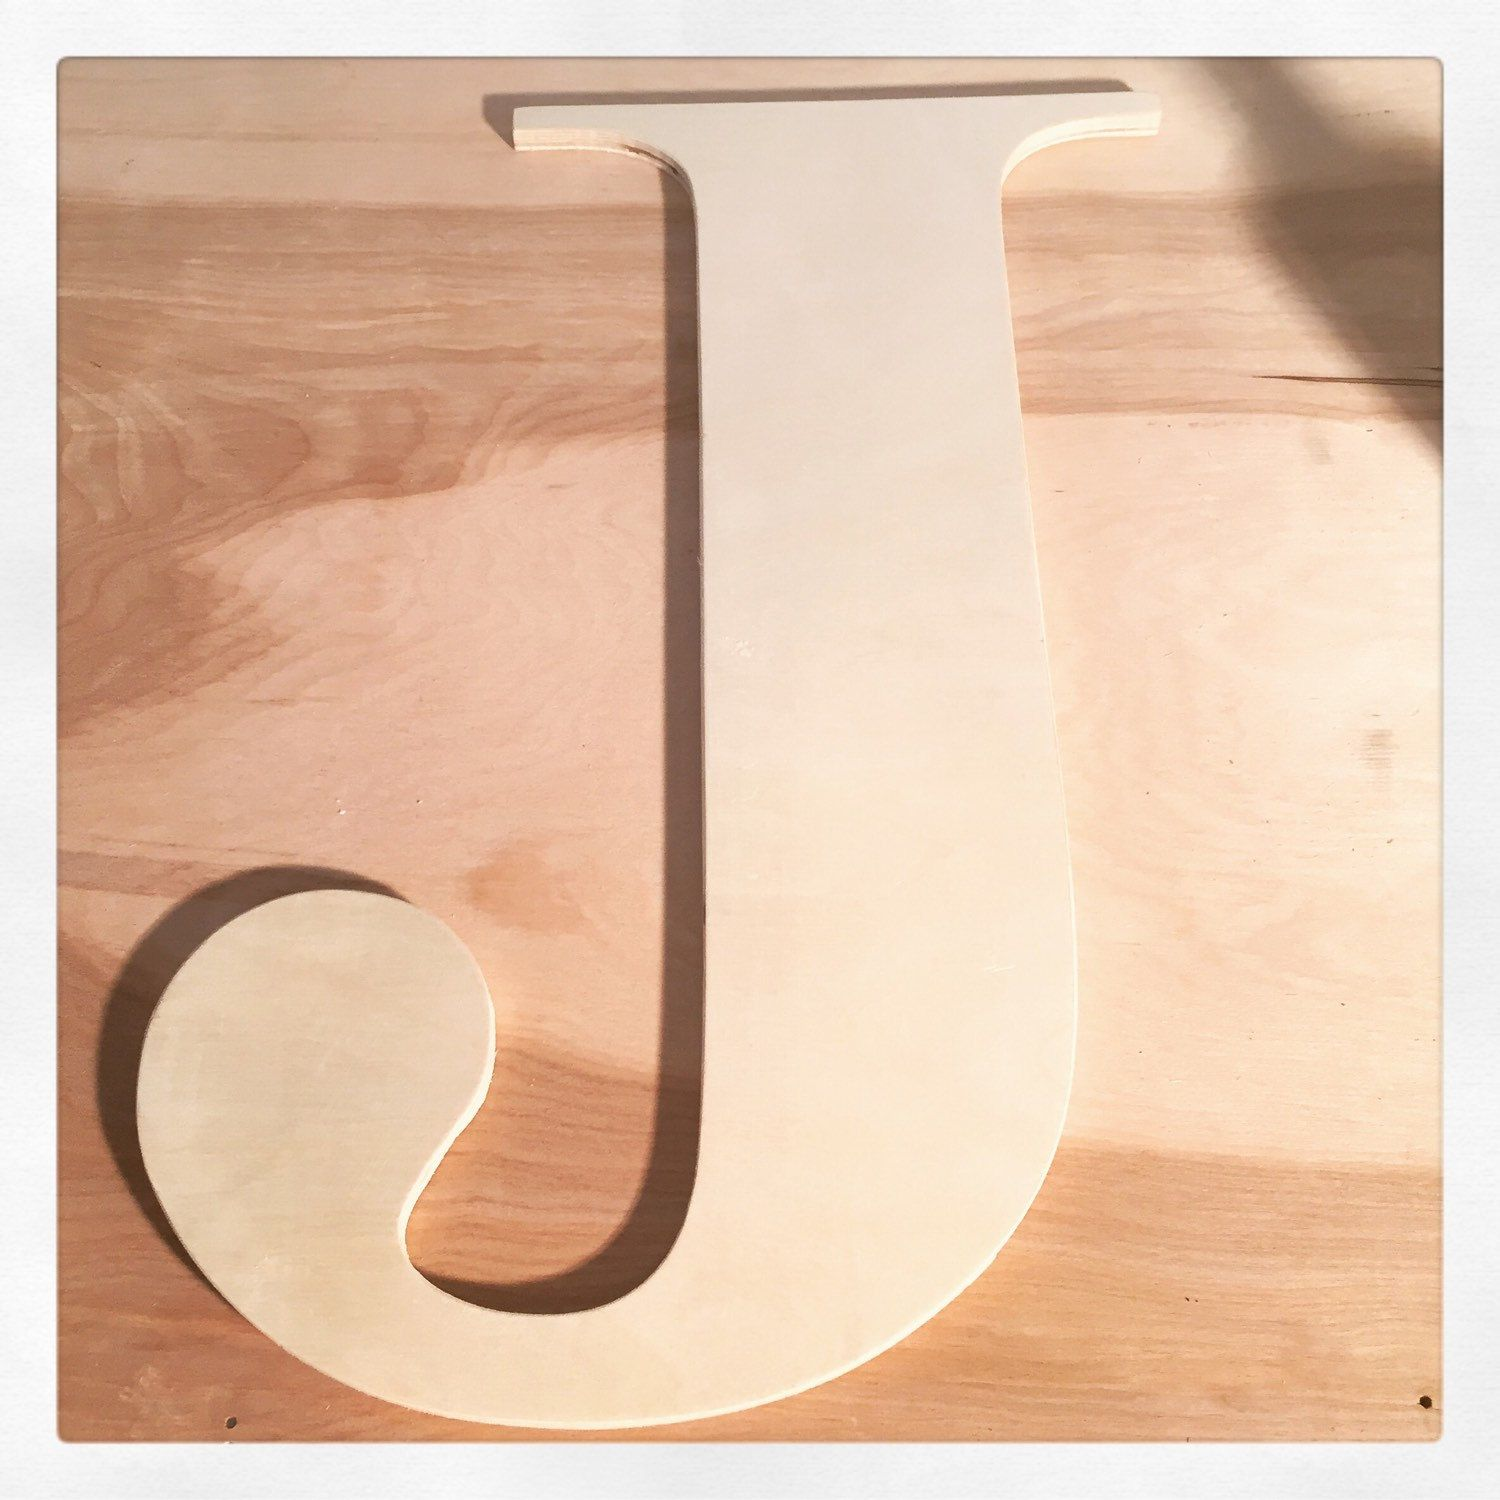 20 Inch Capital Letter Sanded But Unfinished For Your Unique